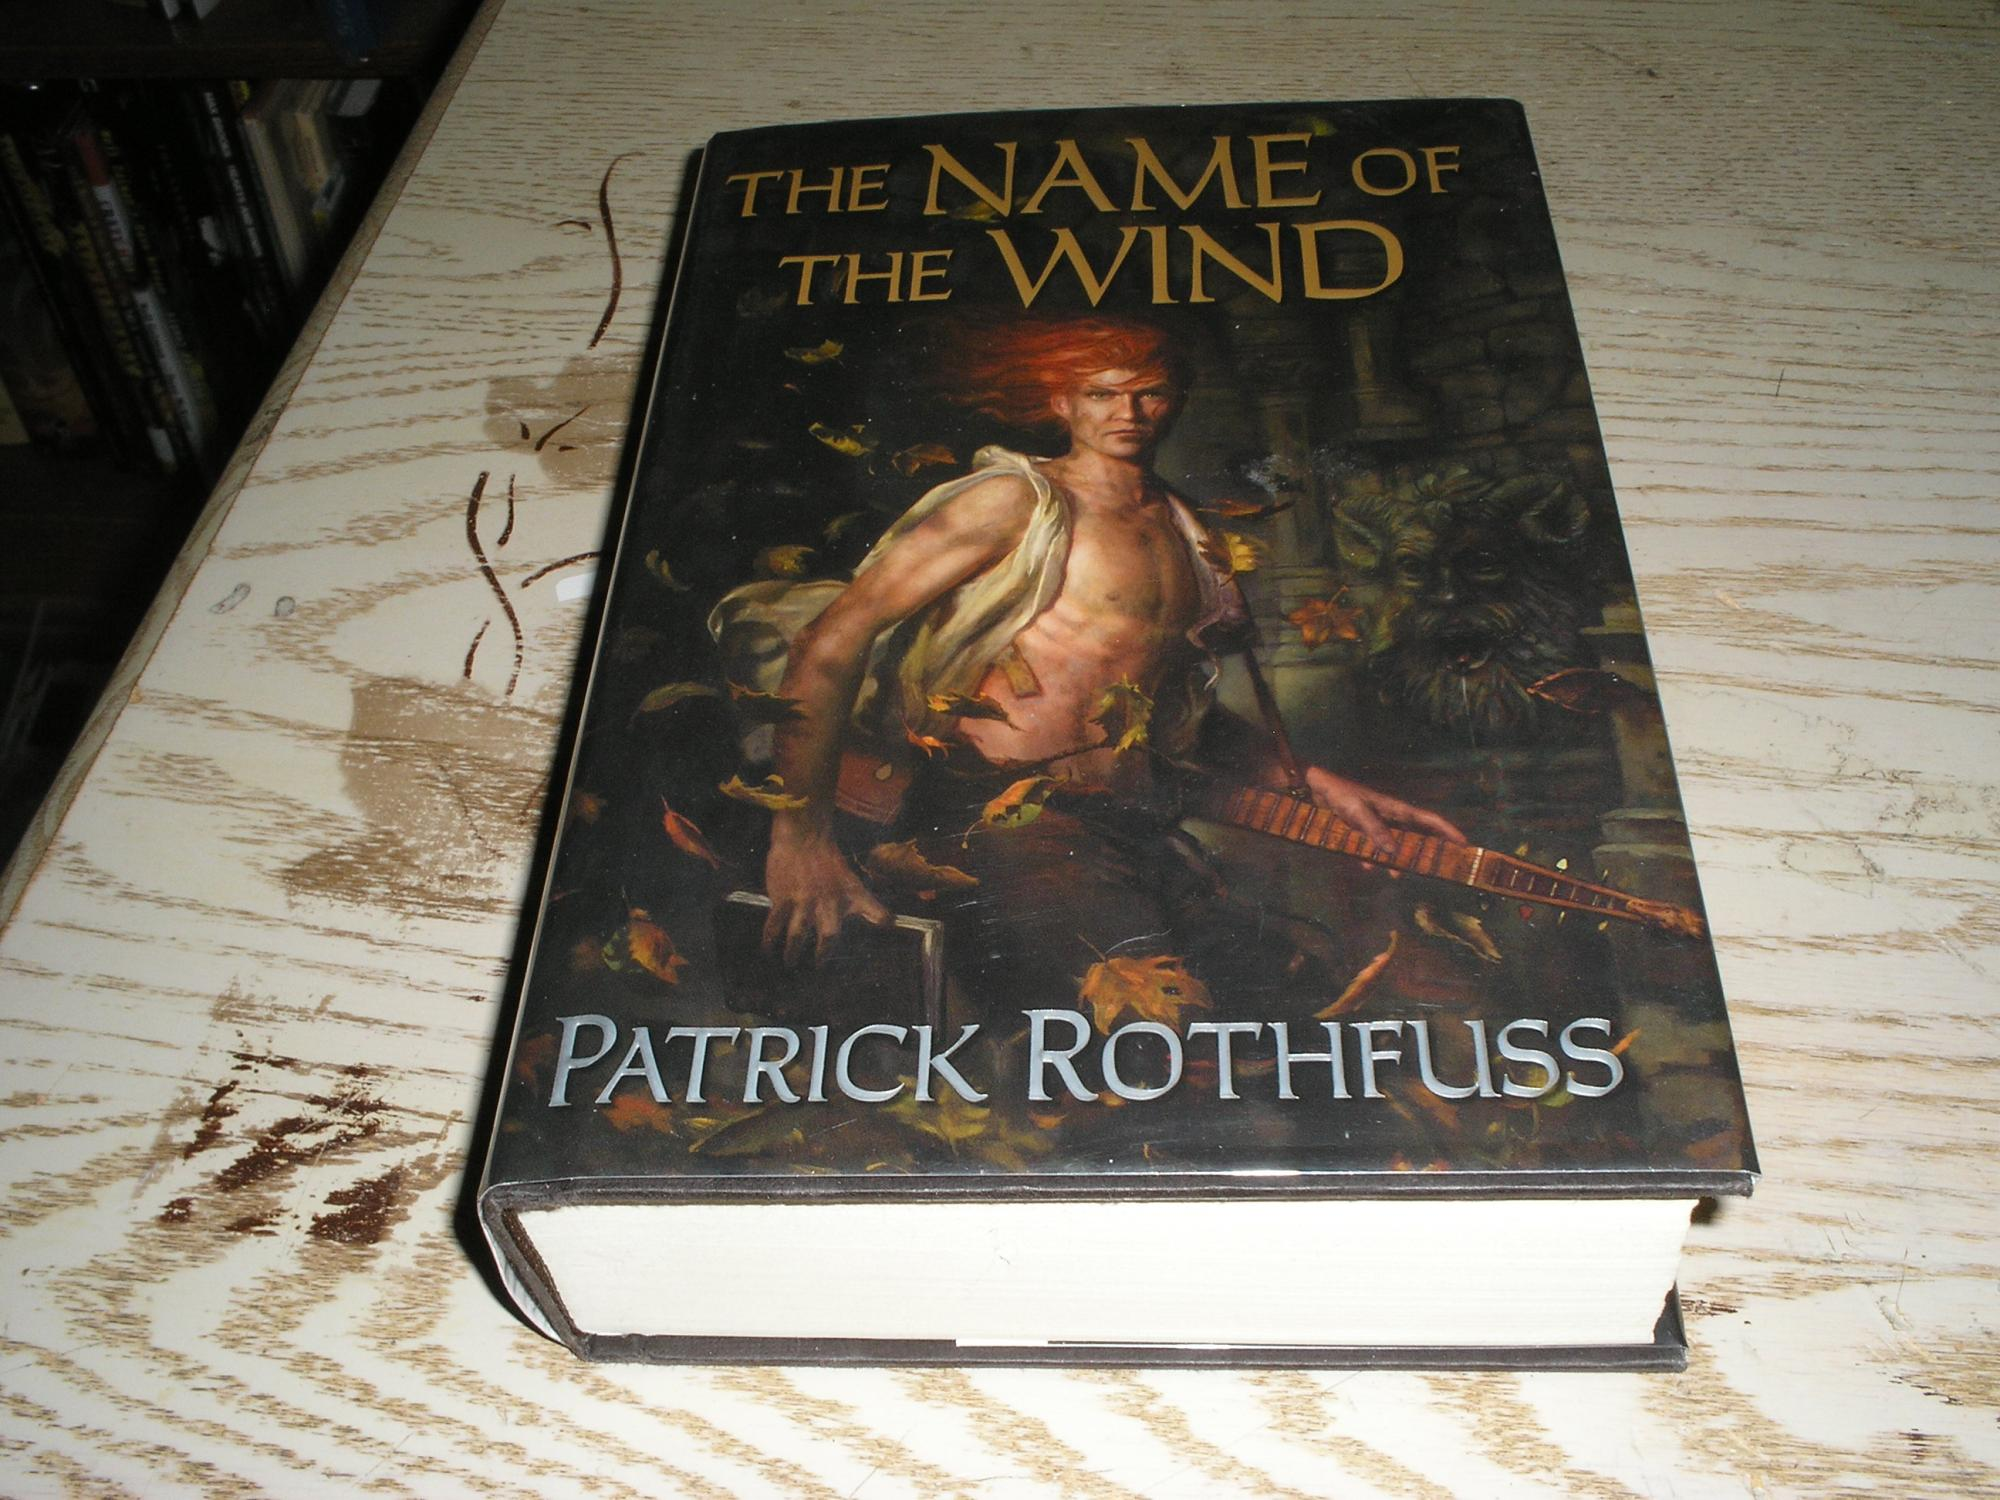 The Name of the Wind by Patrick Rothfuss: DAW 9780756404079 ... Pat Rothfuss Map on miller map, marshall map, martin map, russin map, pierce map, brown map,